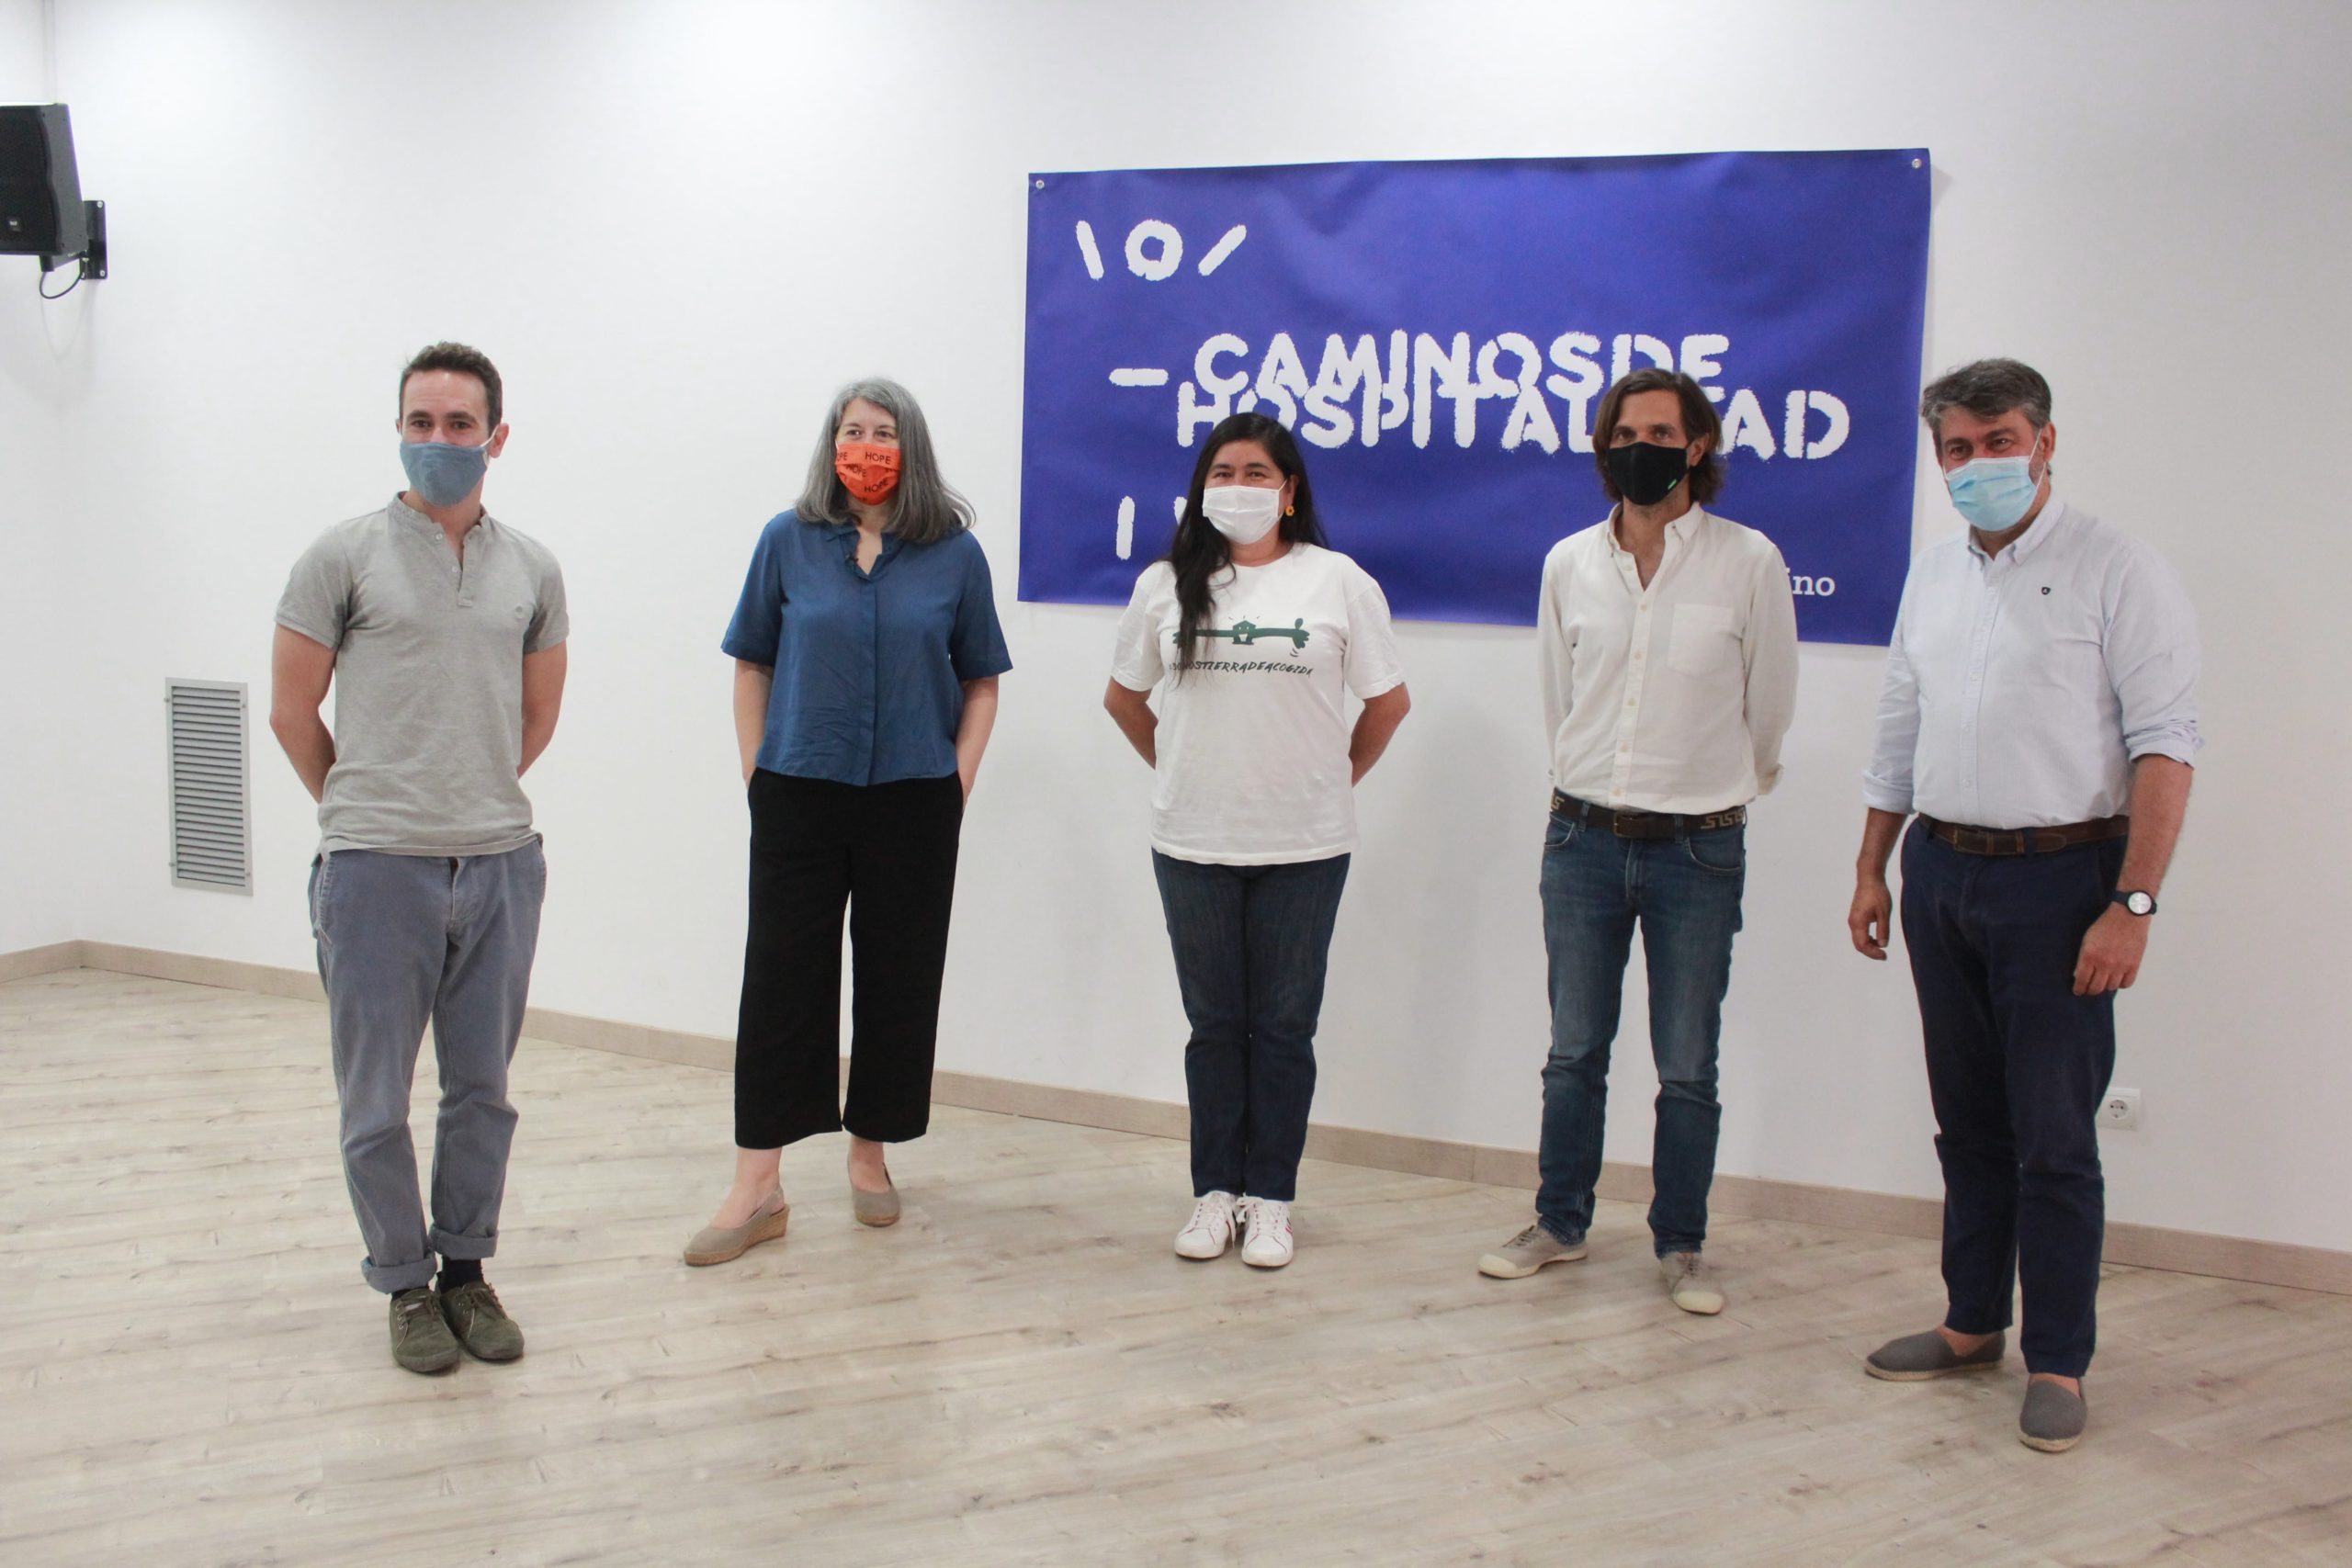 #SumoMiCamino: solidarity walks for a society of hospitality with refugees